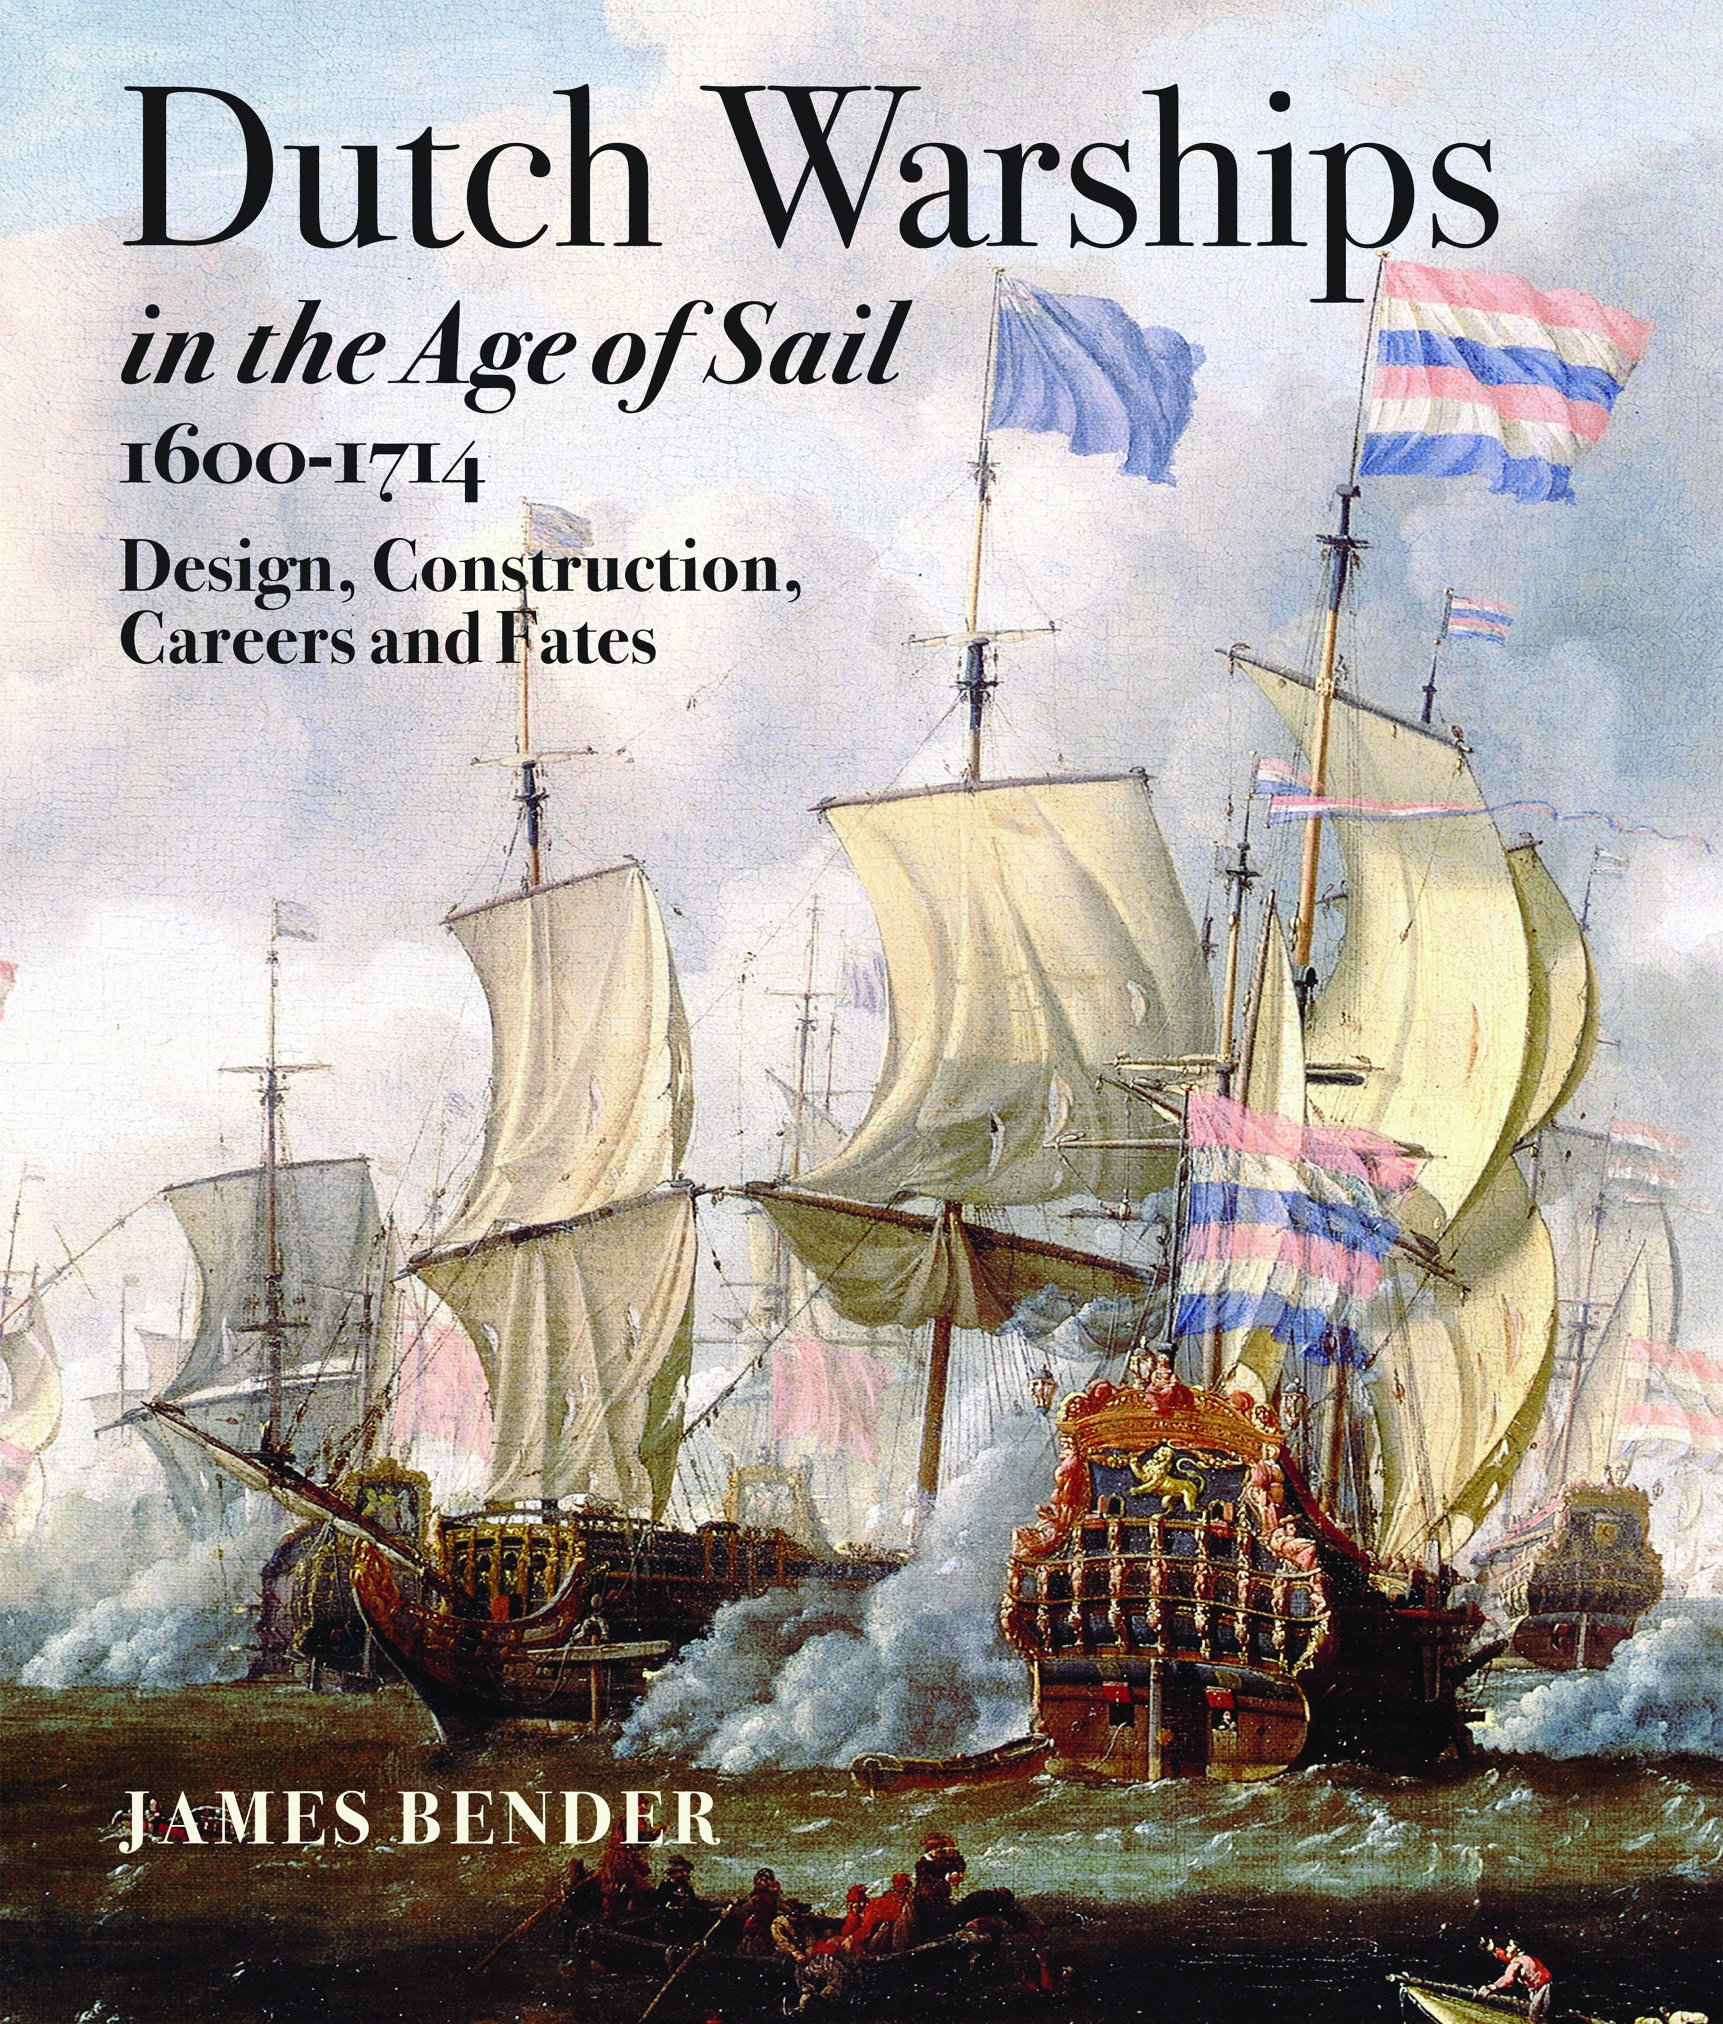 Dutch warships book